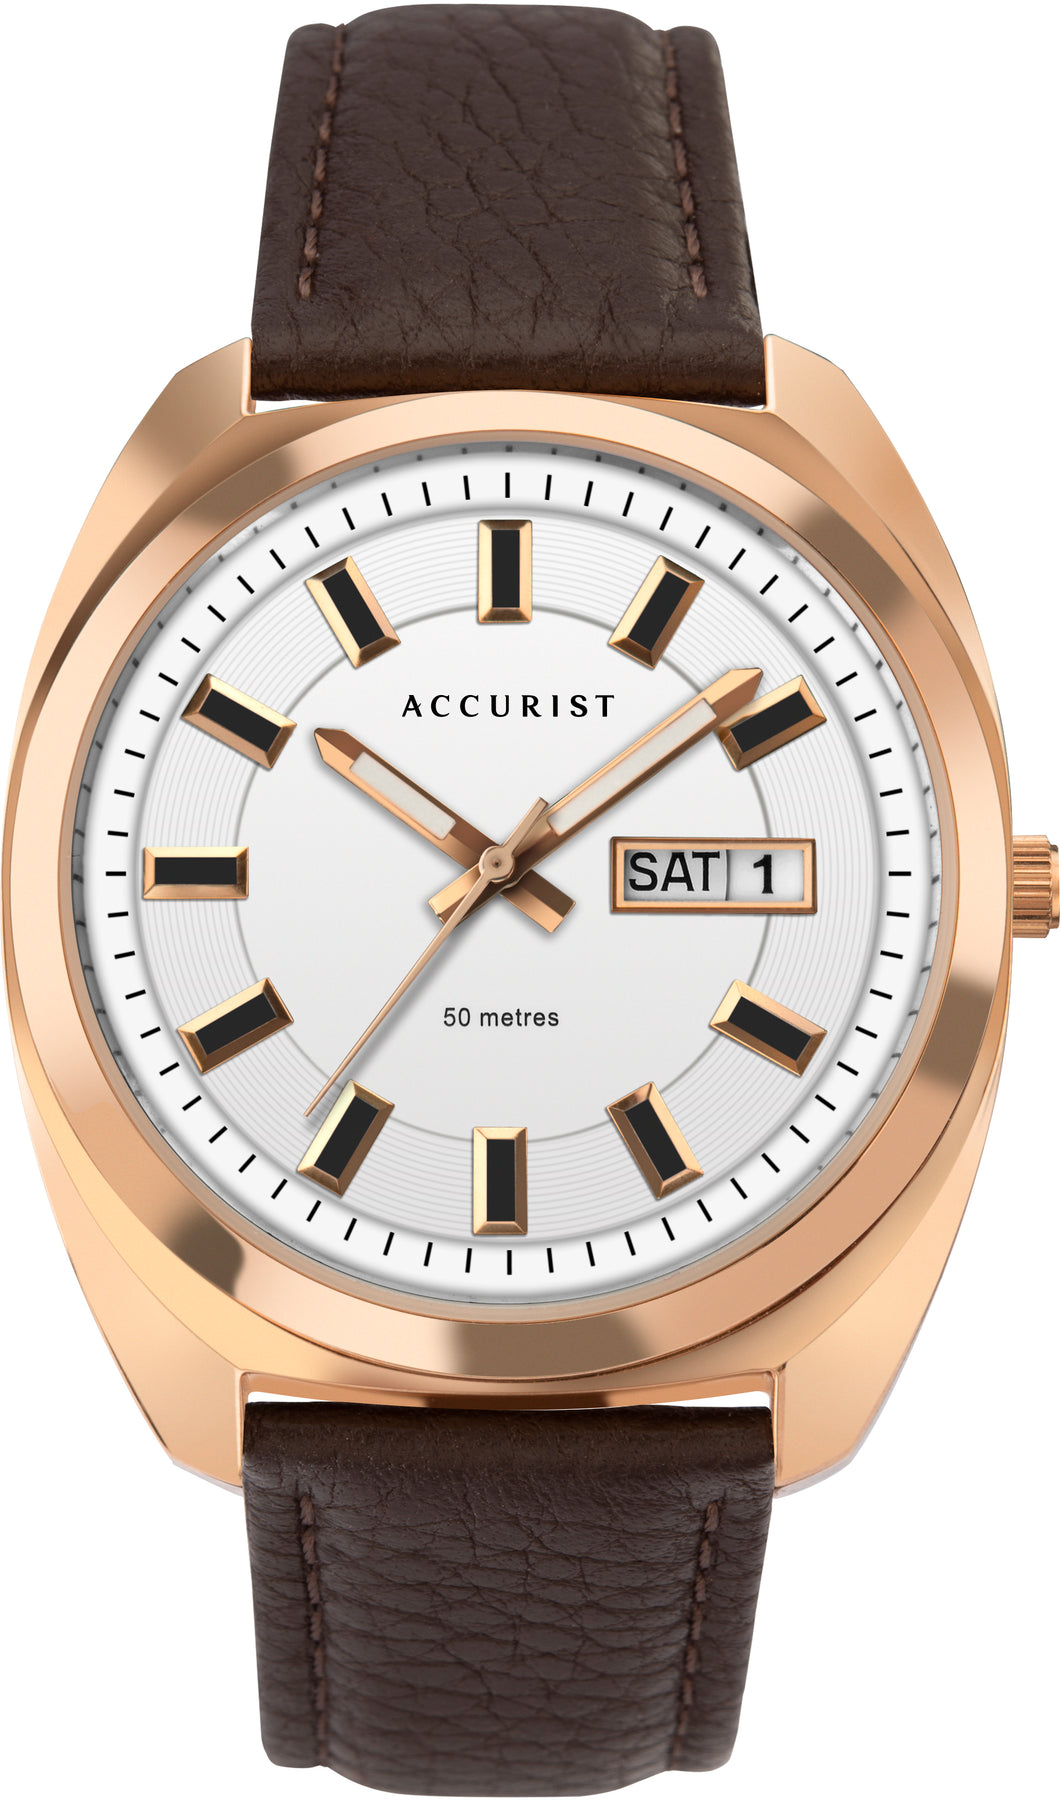 Accurist Men's Retro Inspired Strap Watch - Product Code - 7336